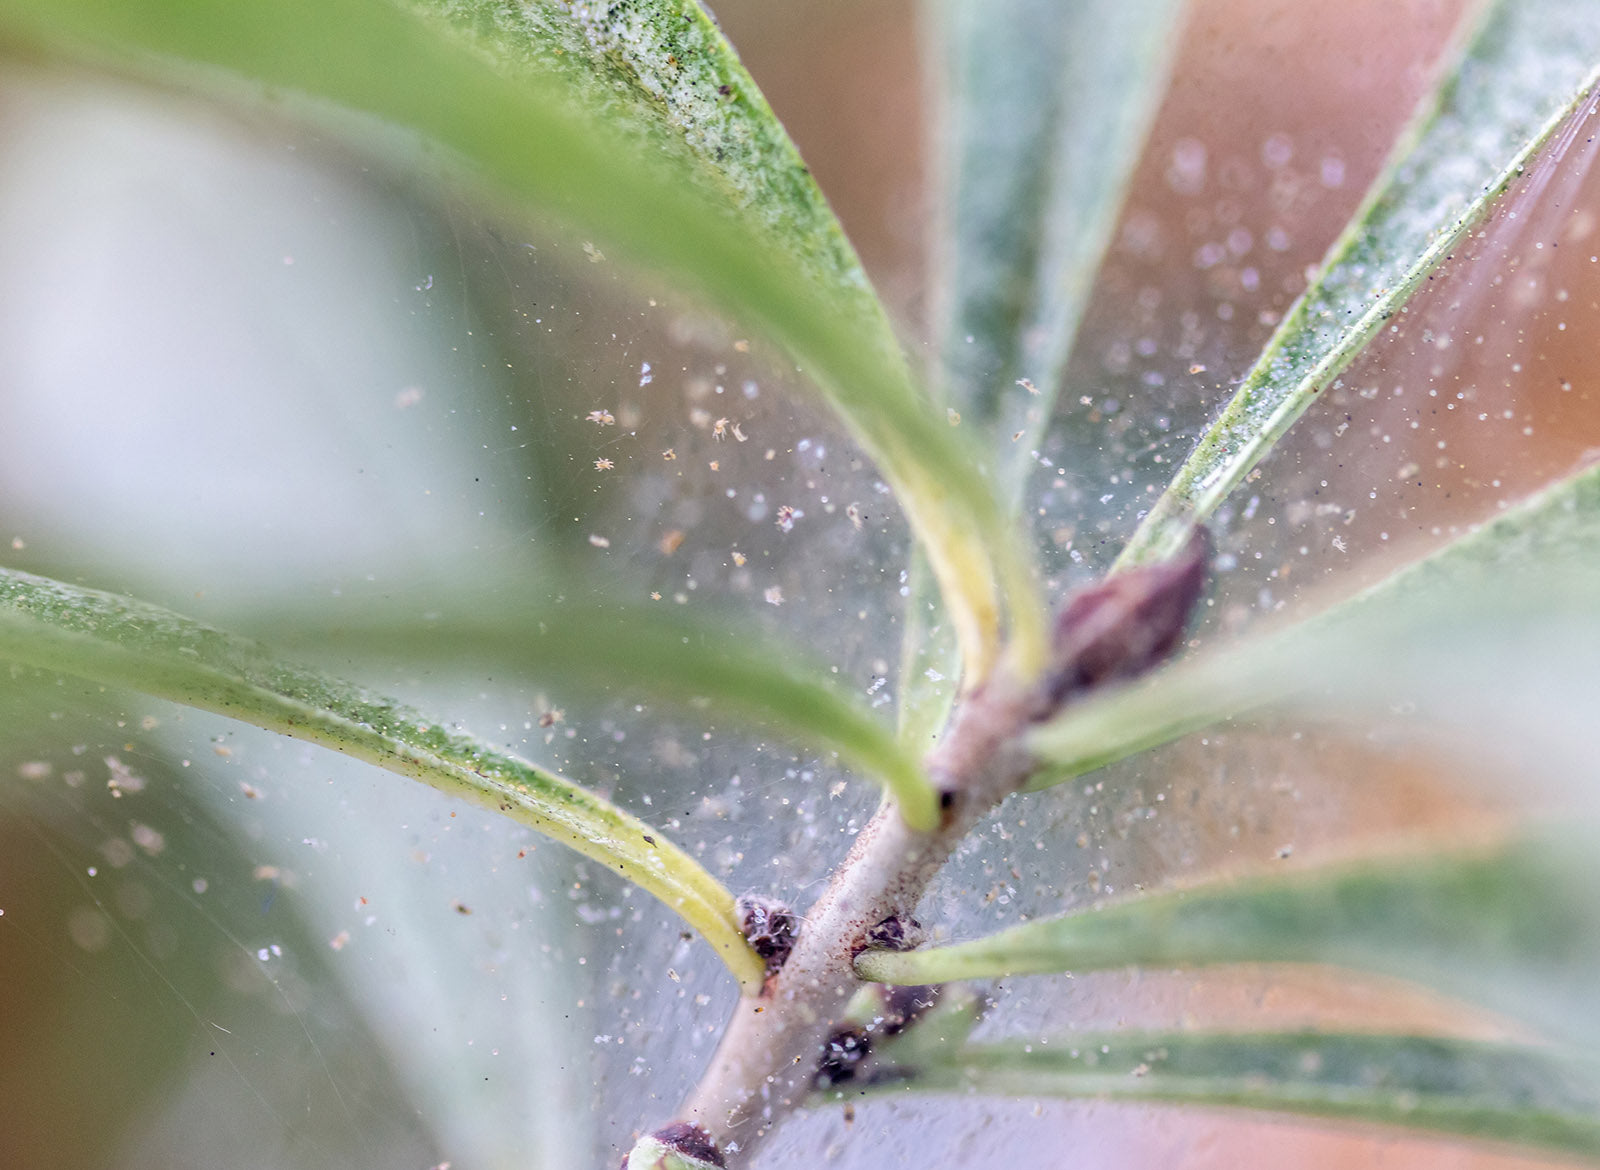 How To Get Rid Of Spider Mites On Houseplants